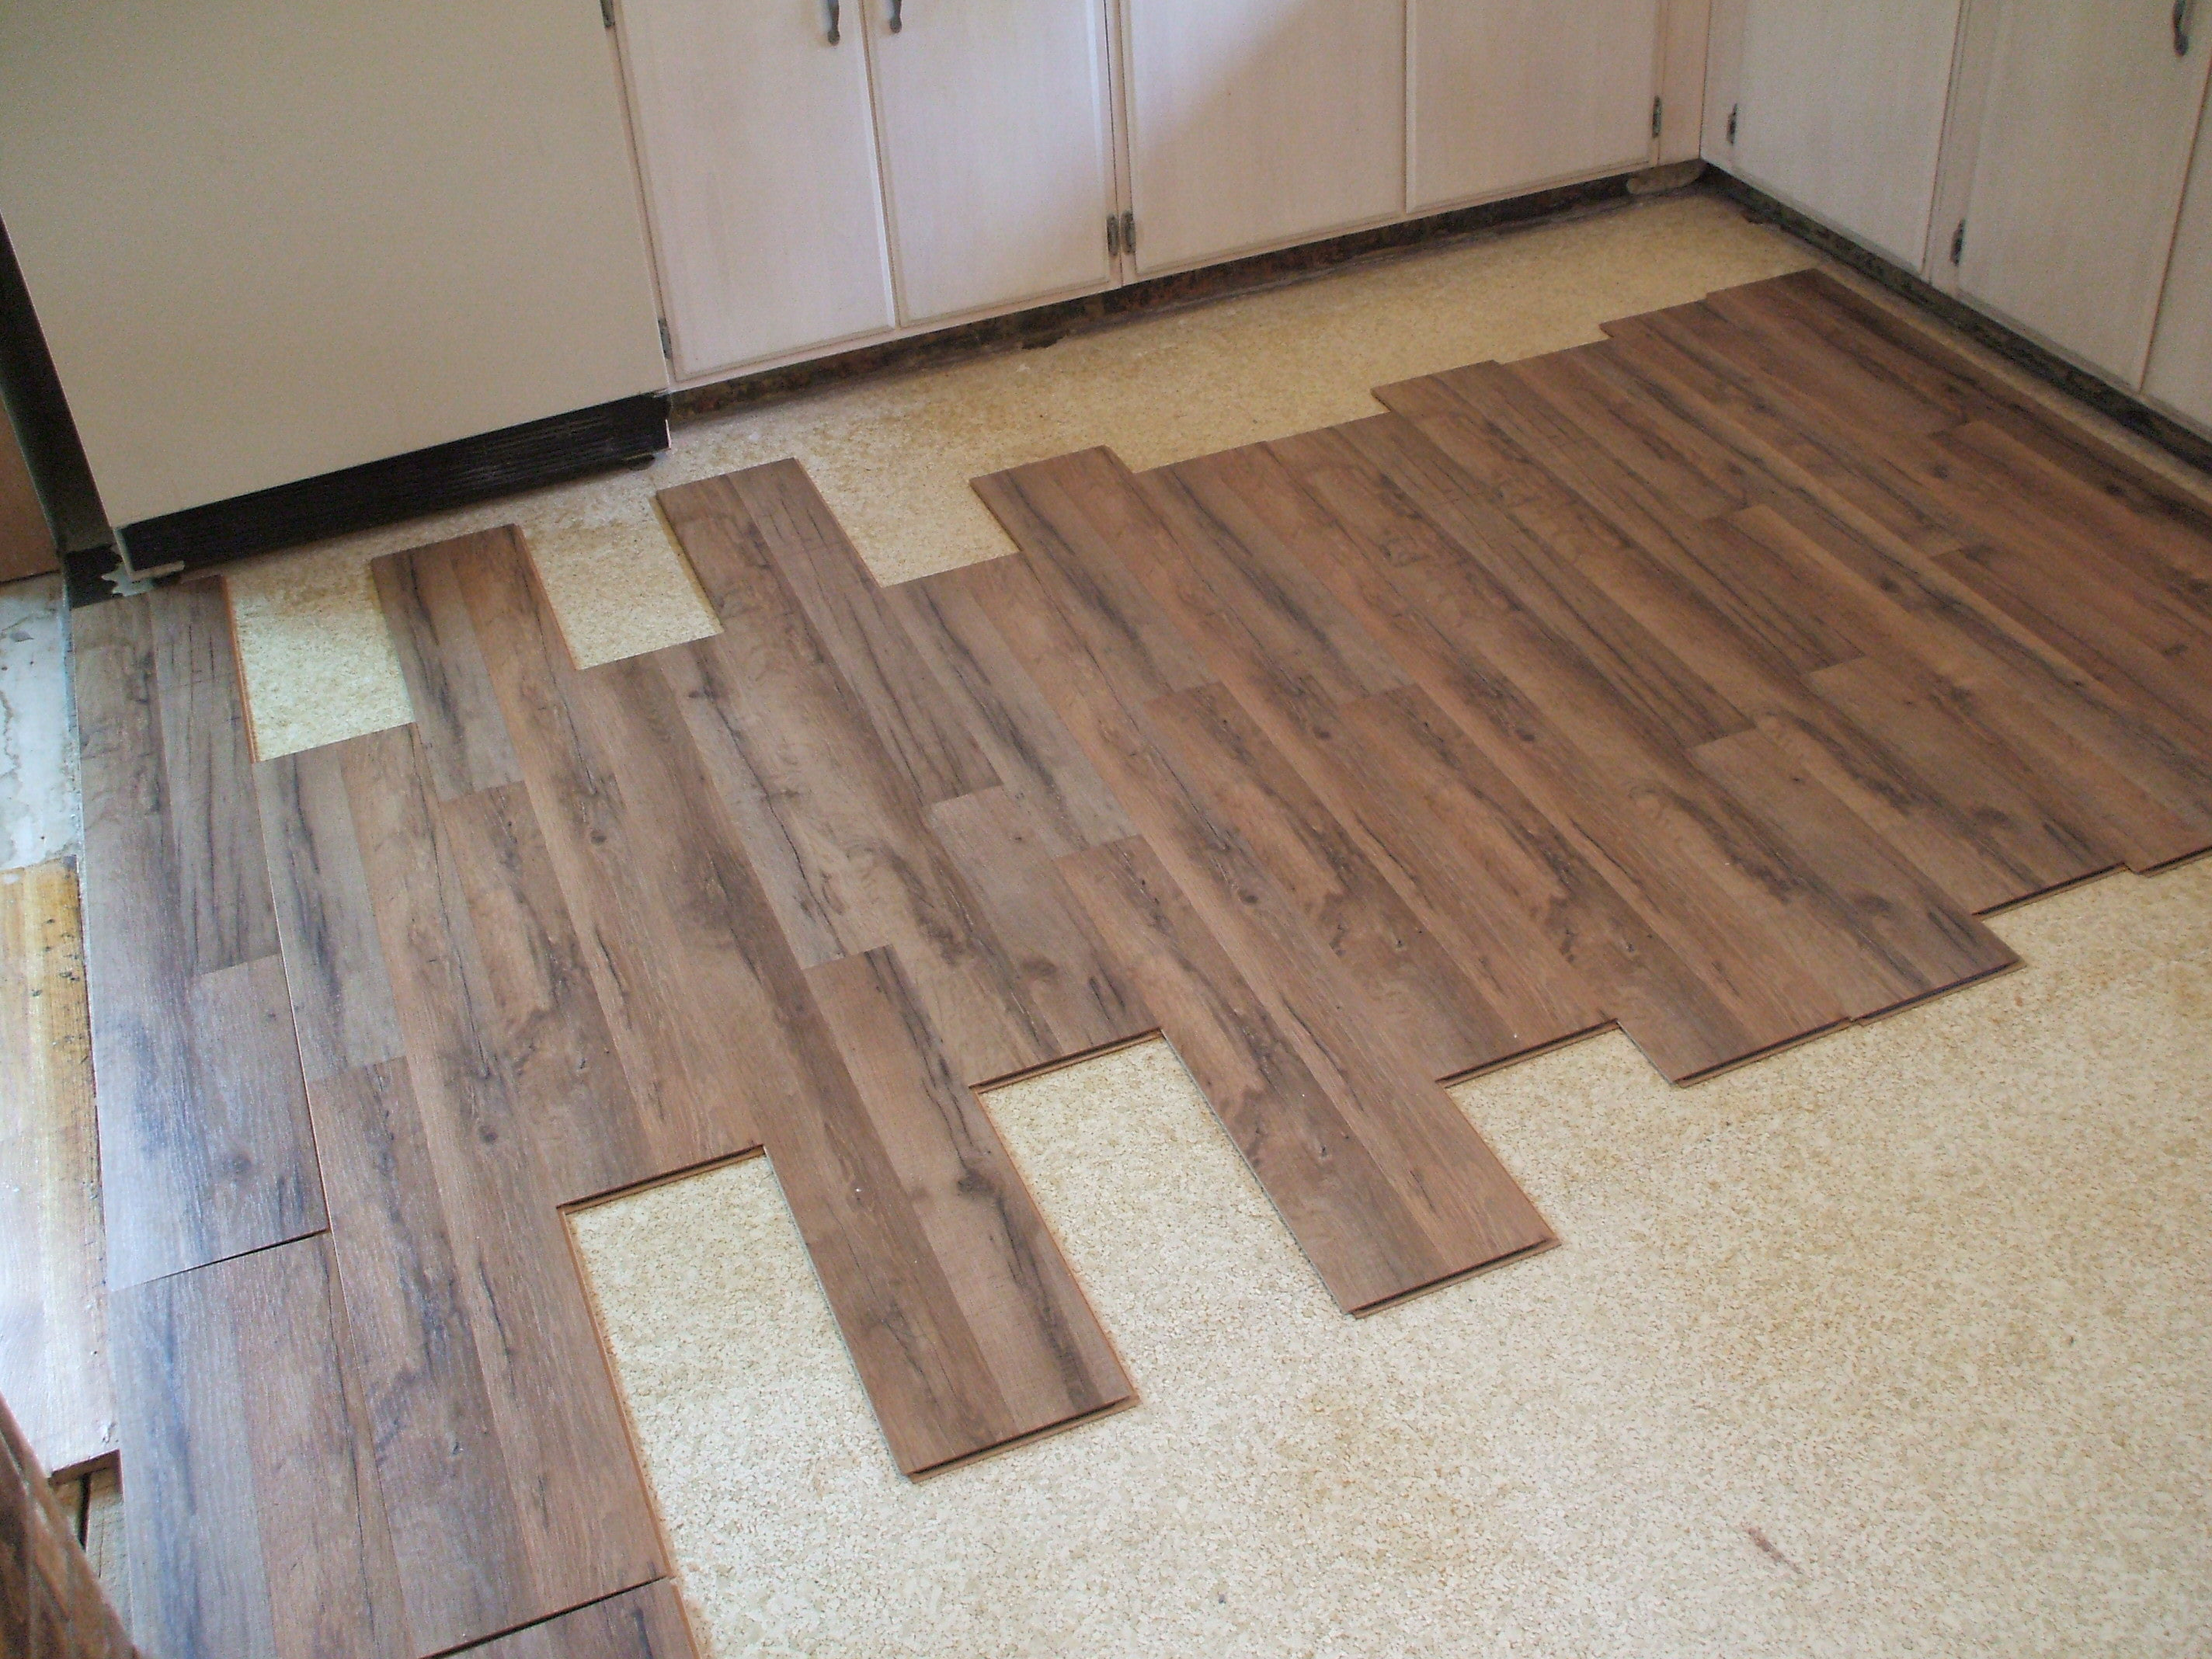 Cool Flooring Options For Your Rental Home Which Is Best Interior Design Ideas Tzicisoteloinfo